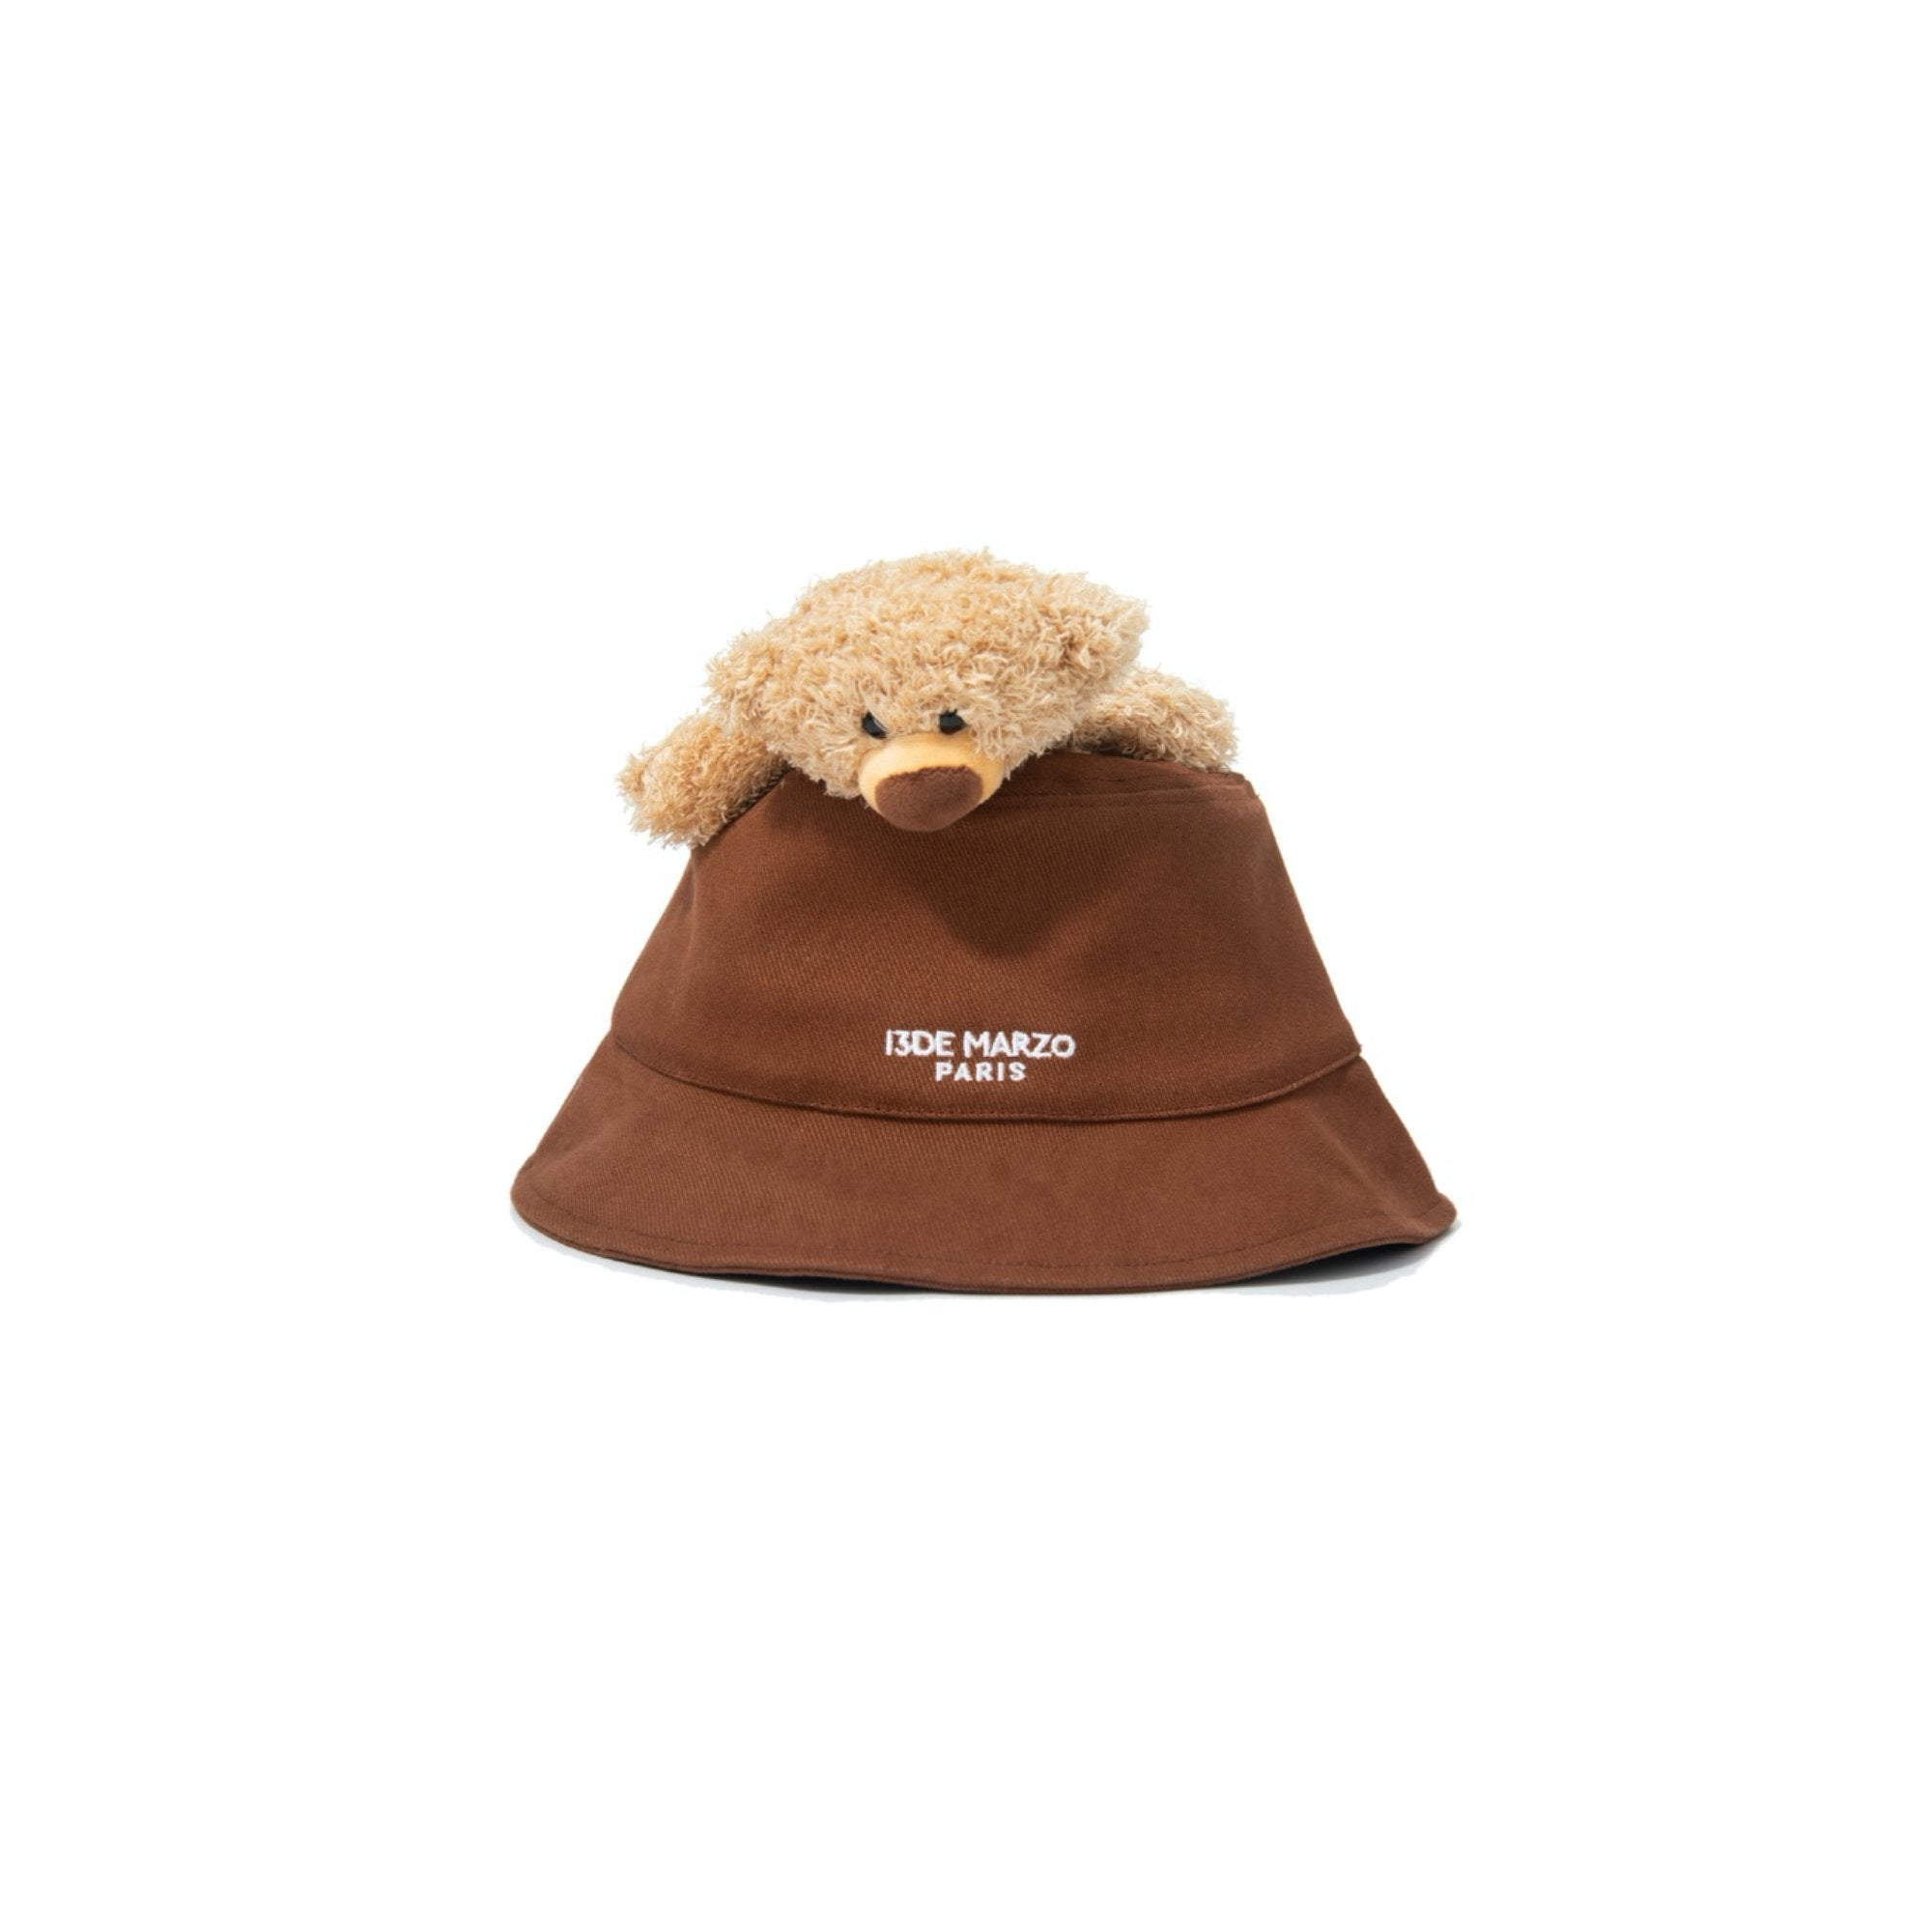 13 DE MARZO Lazy Teddy Bear Bucket Hat Rustic Brown | MADA IN CHINA